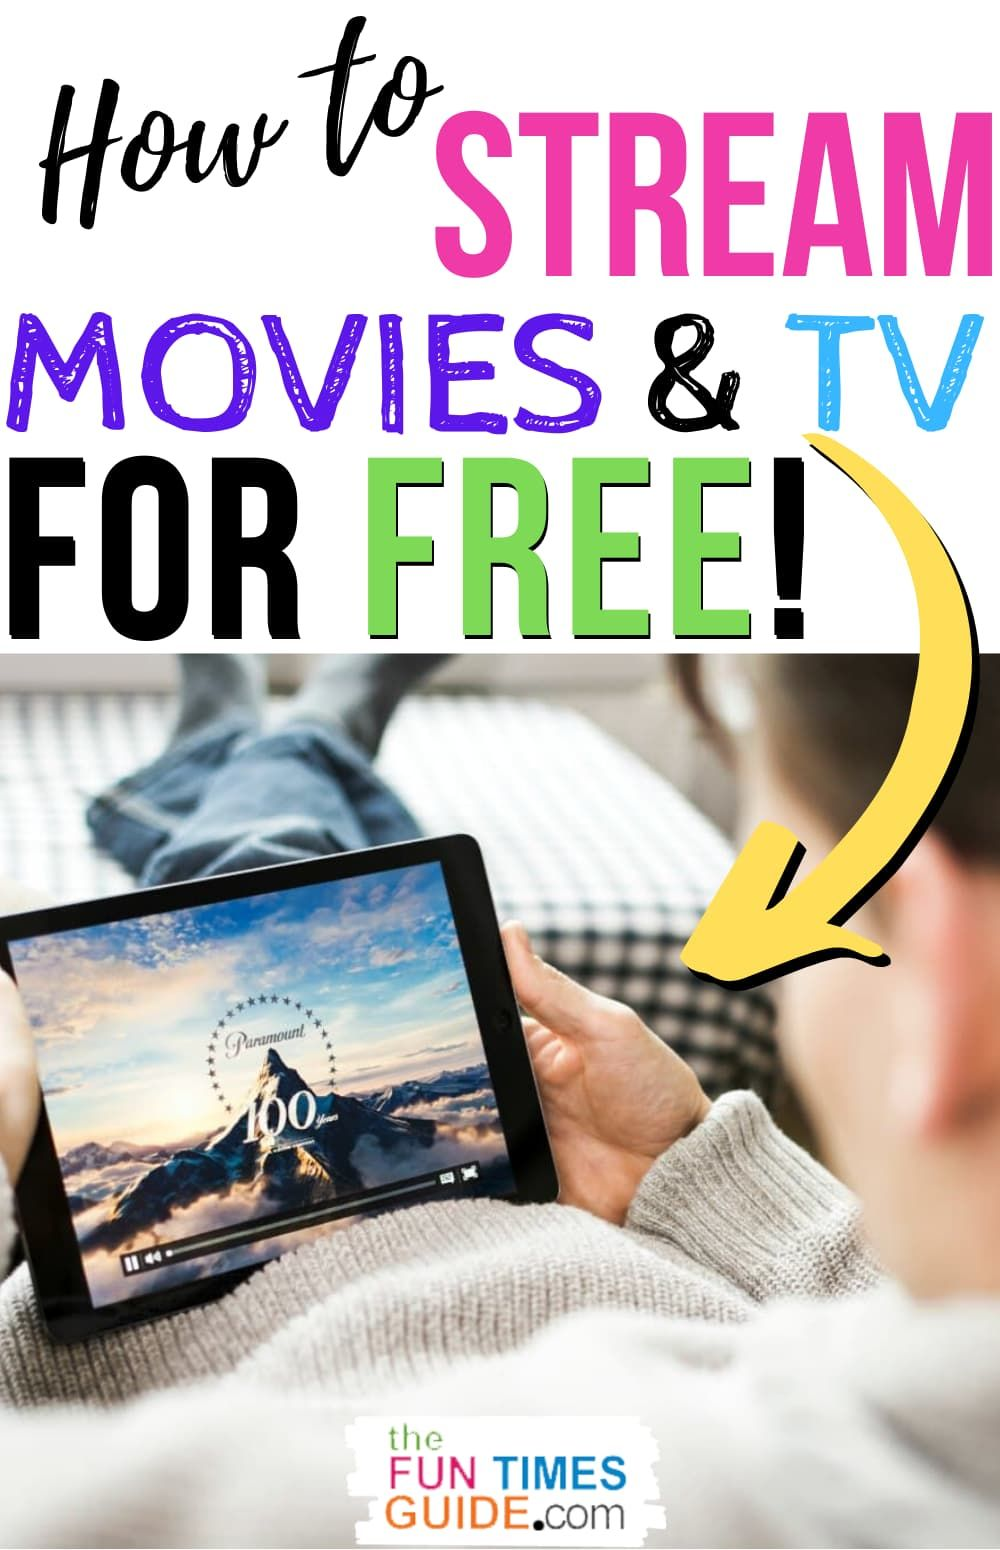 How To Get Rid Of Cable And Watch TV Online Free! (11 Free